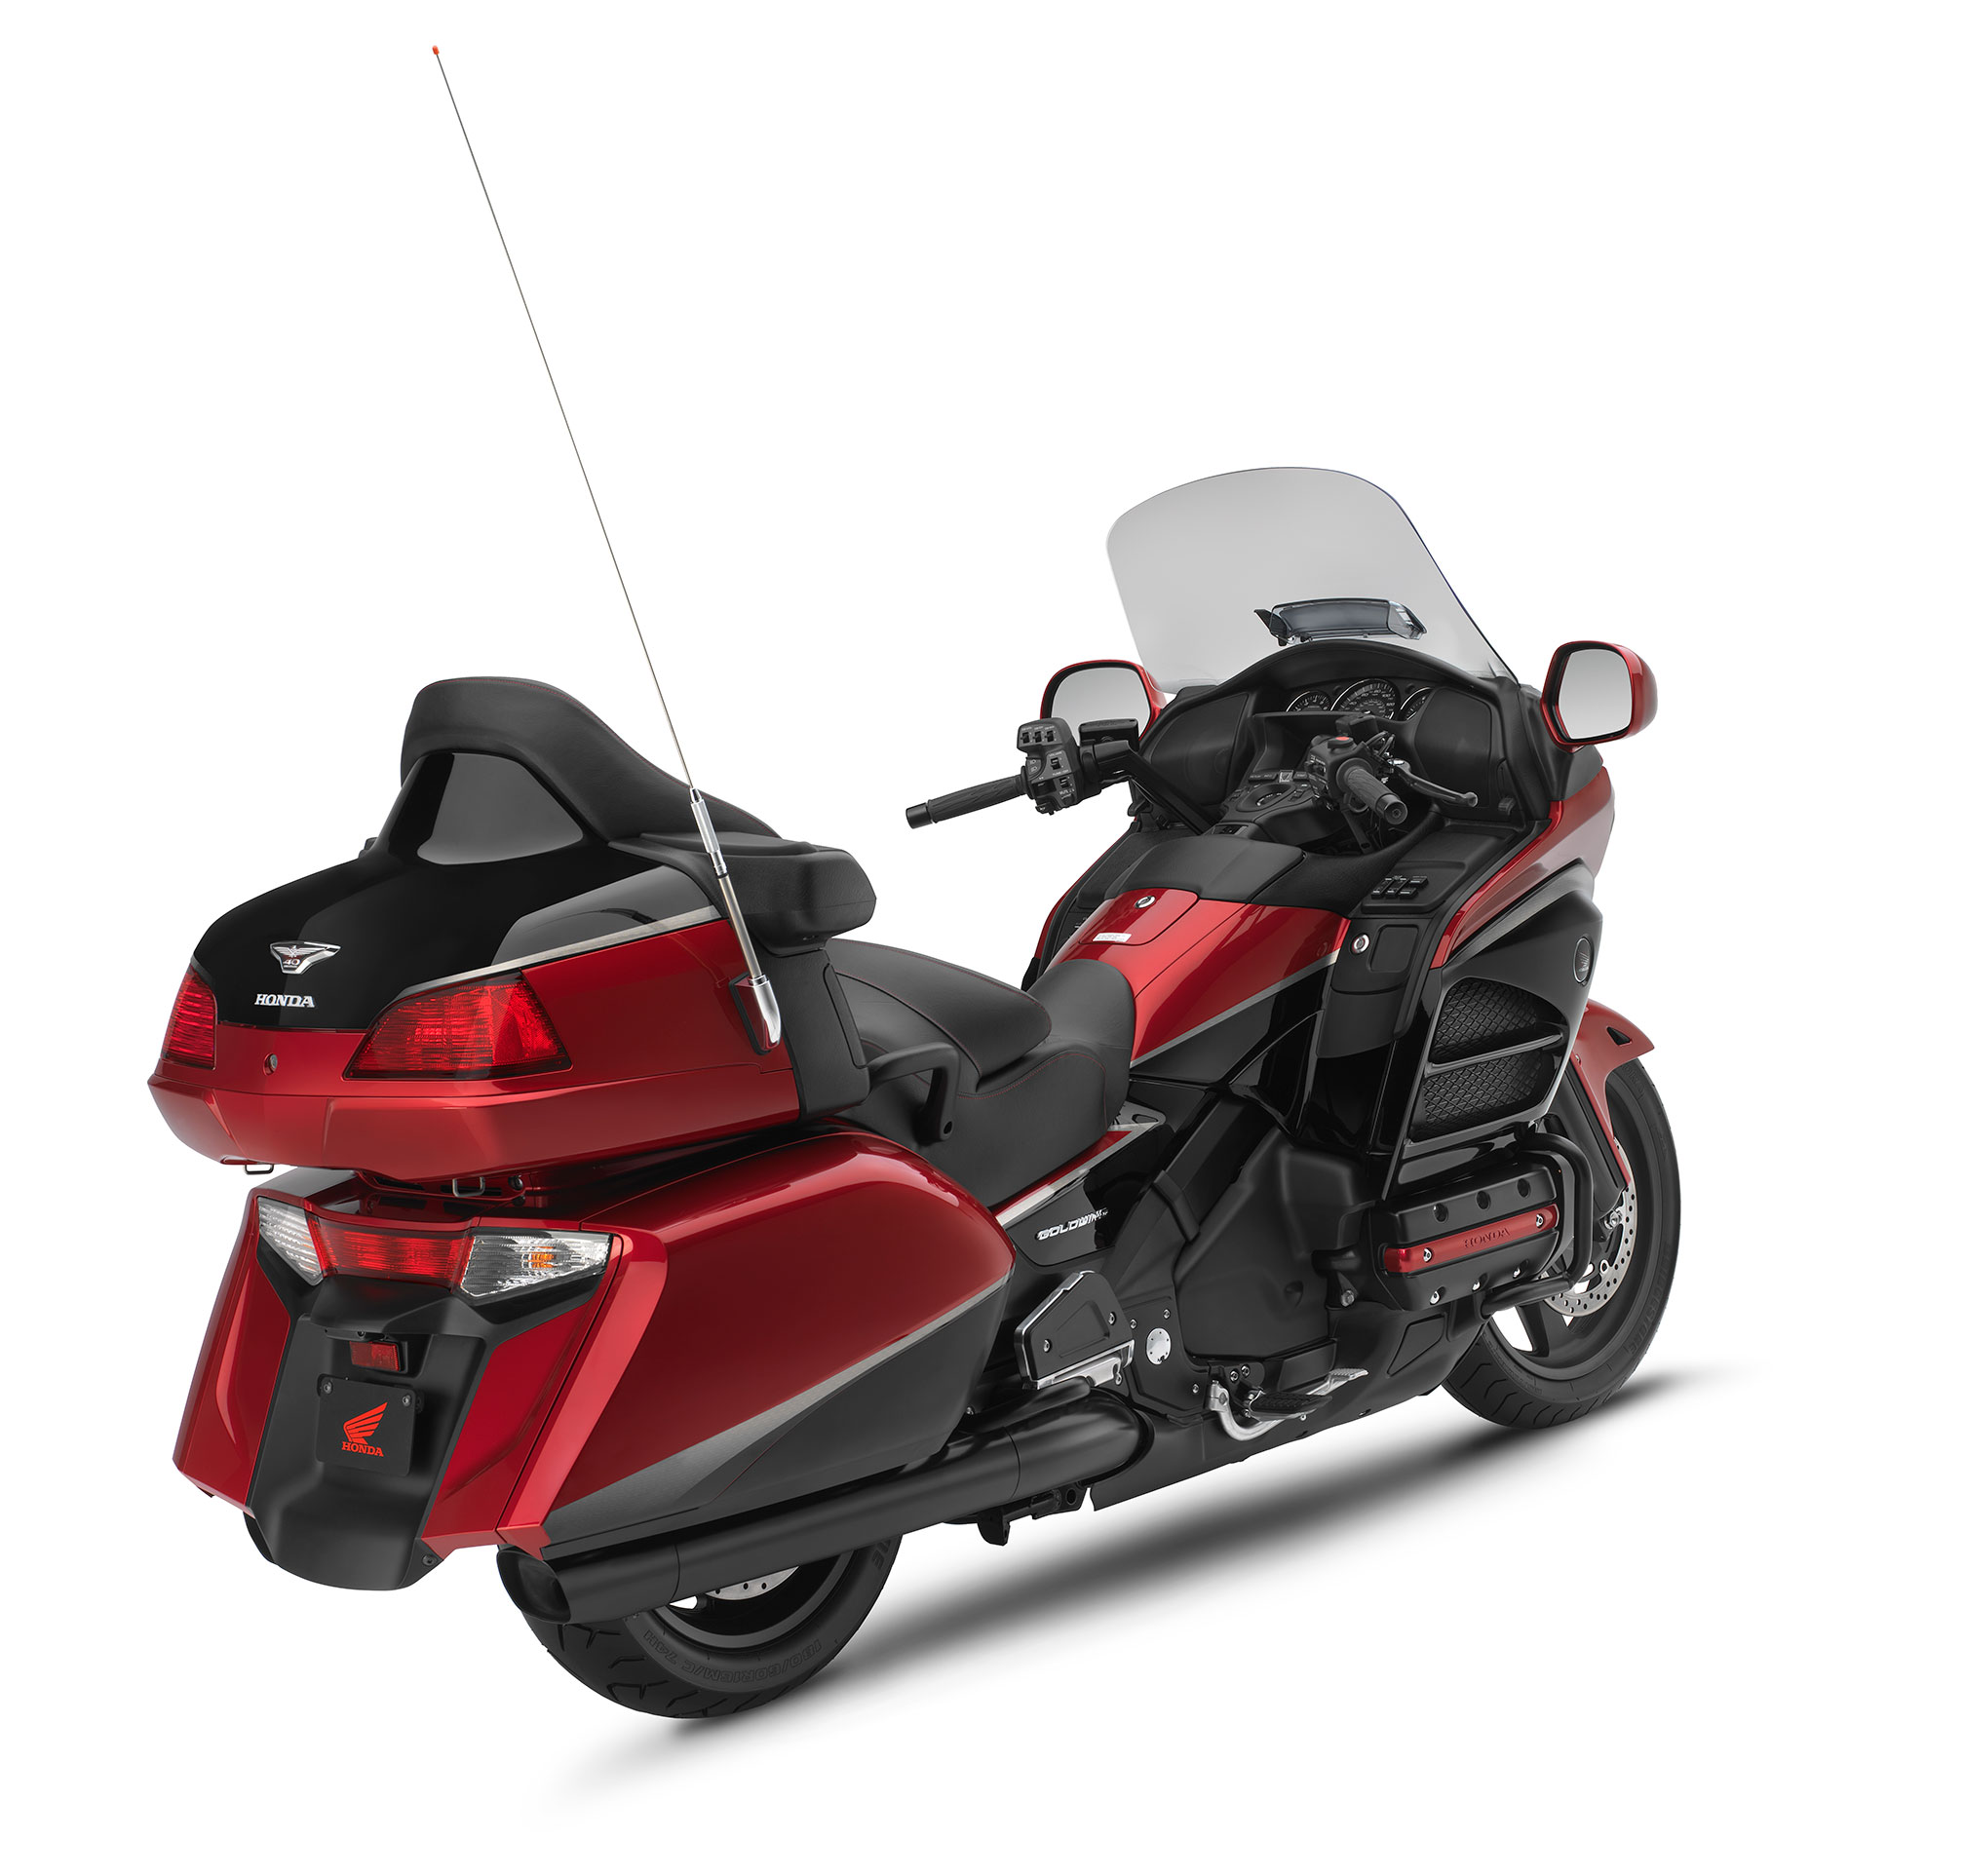 Honda Gold Wing F6C 2015 images #83215